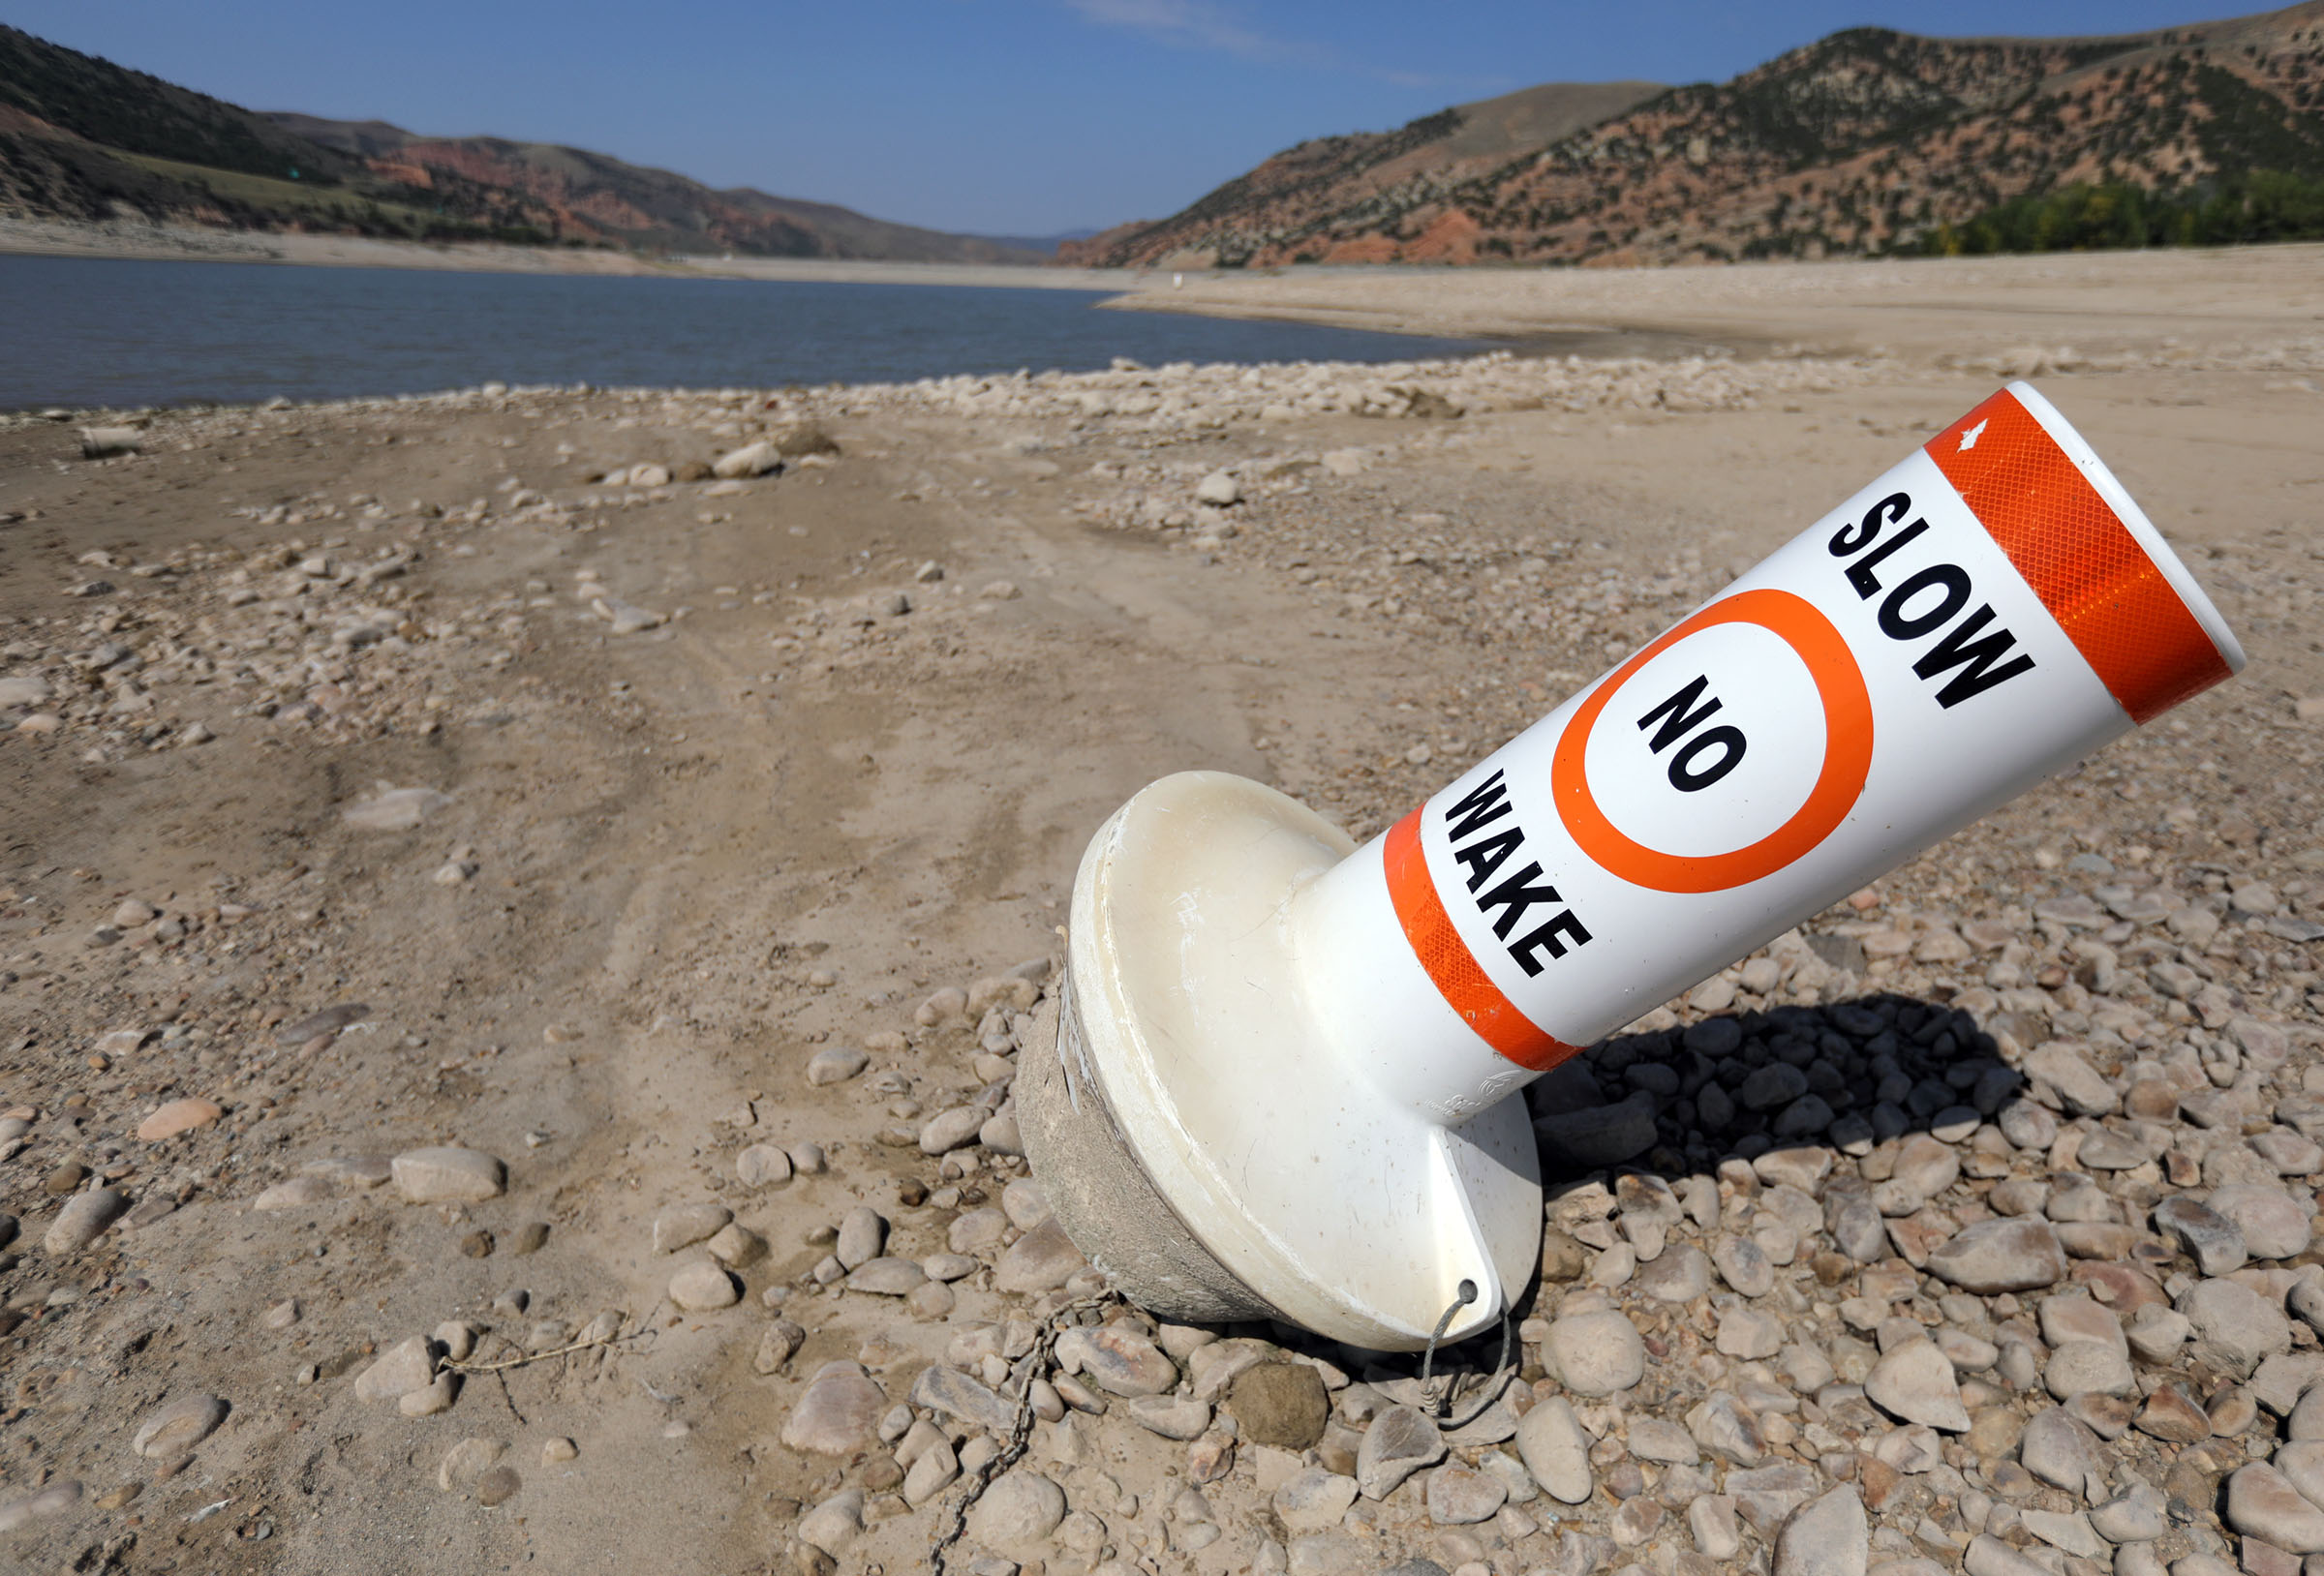 A marker buoy is grounded on the dried-up shore of Echo Reservoir, which is currently at 12% capacity, at Echo State Park during a drought on Thursday, Sept. 16, 2021. Utah may be headed into fall with cooler temperatures and less pressure to water, but the emergency drought situation is by no means over.